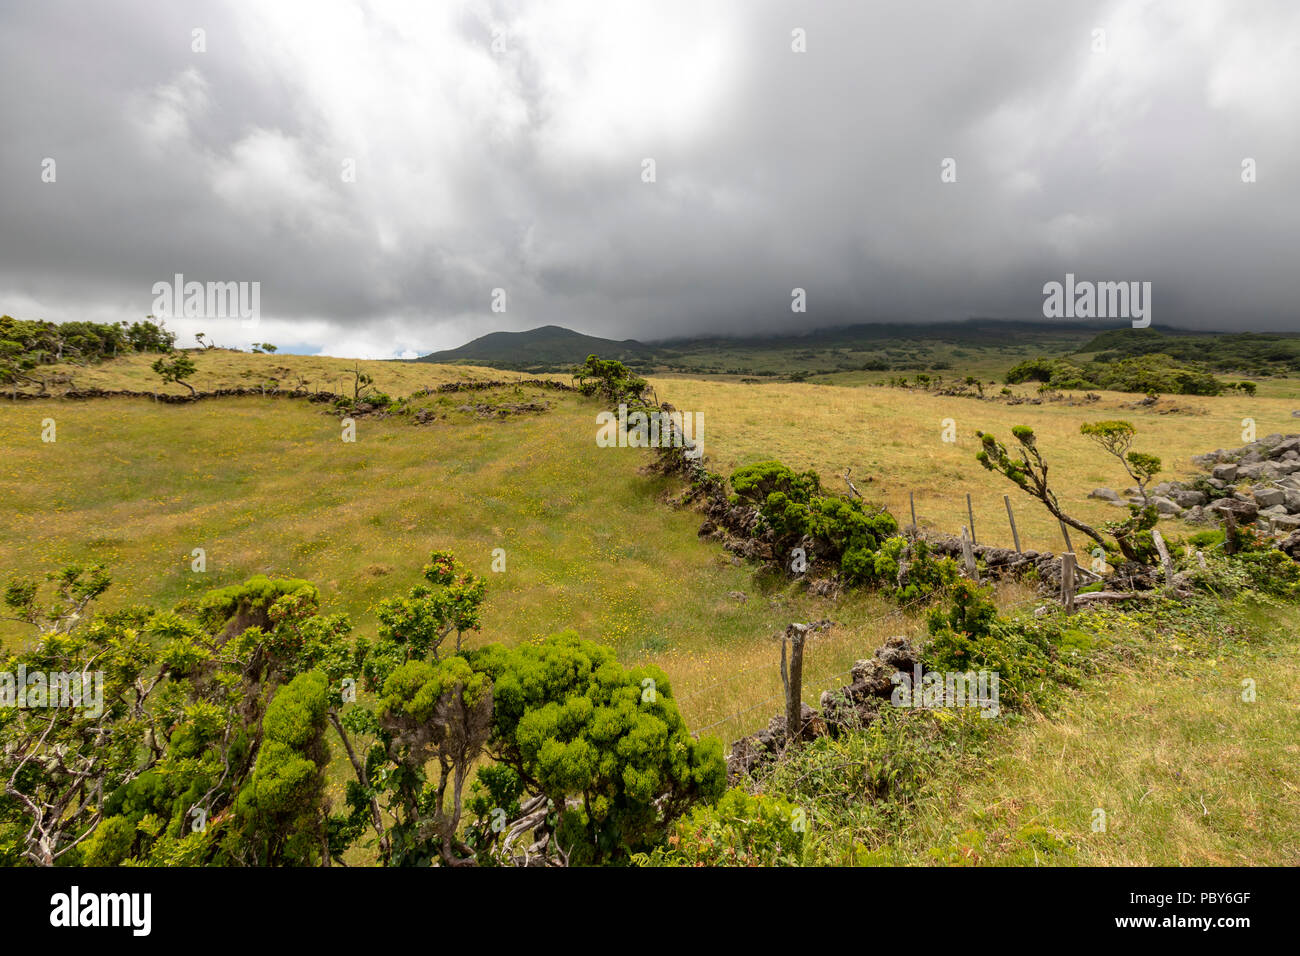 Landscape along  EN3 longitudinal road northeast of Mount Pico, Pico along , Pico island, Azores Stock Photo